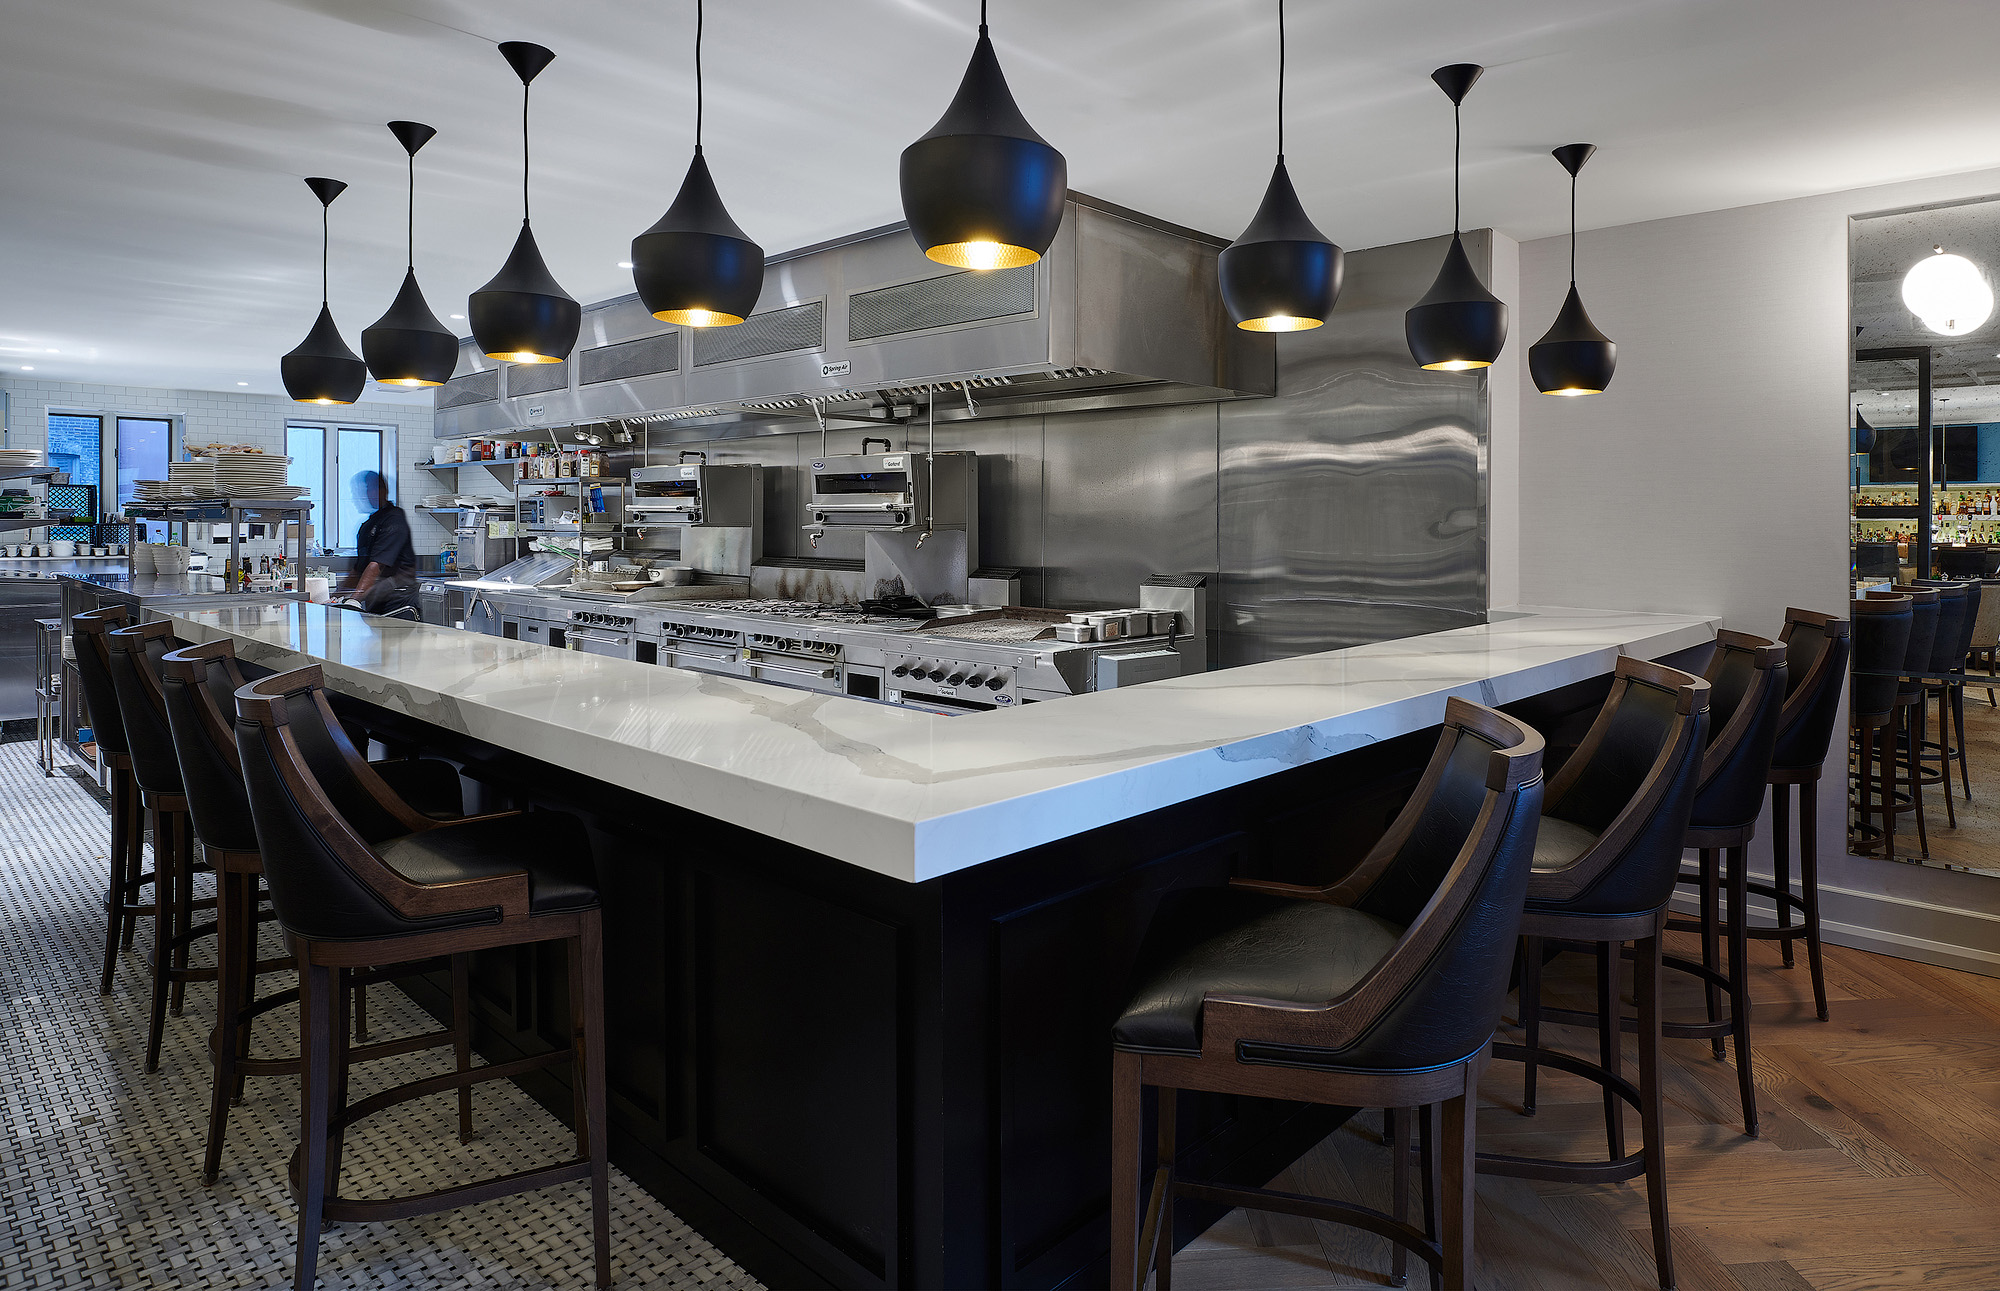 National Club bar with black pendant lighting and white marble countertop